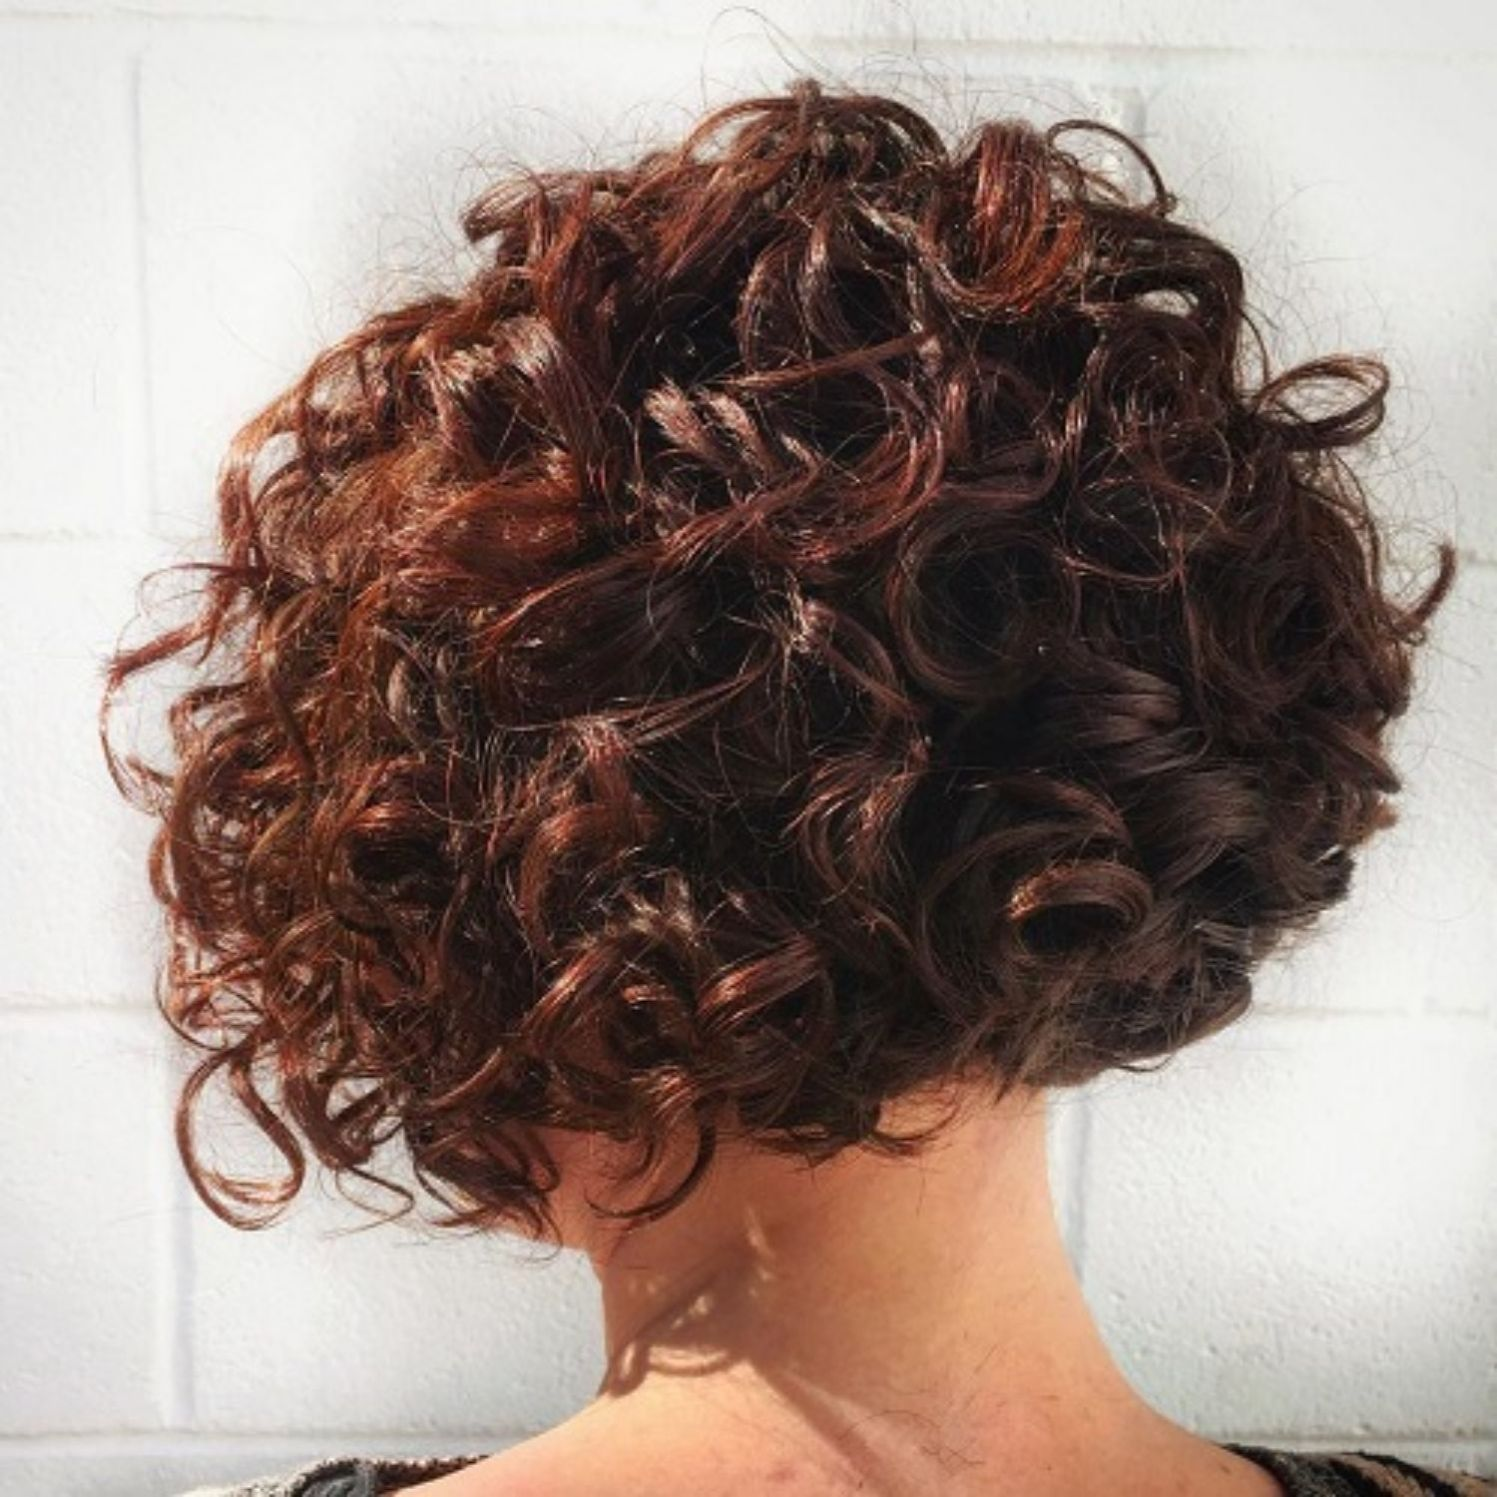 65 Different Versions of Curly Bob Hairstyle | Bob hairstyles, Haircuts for curly hair ...